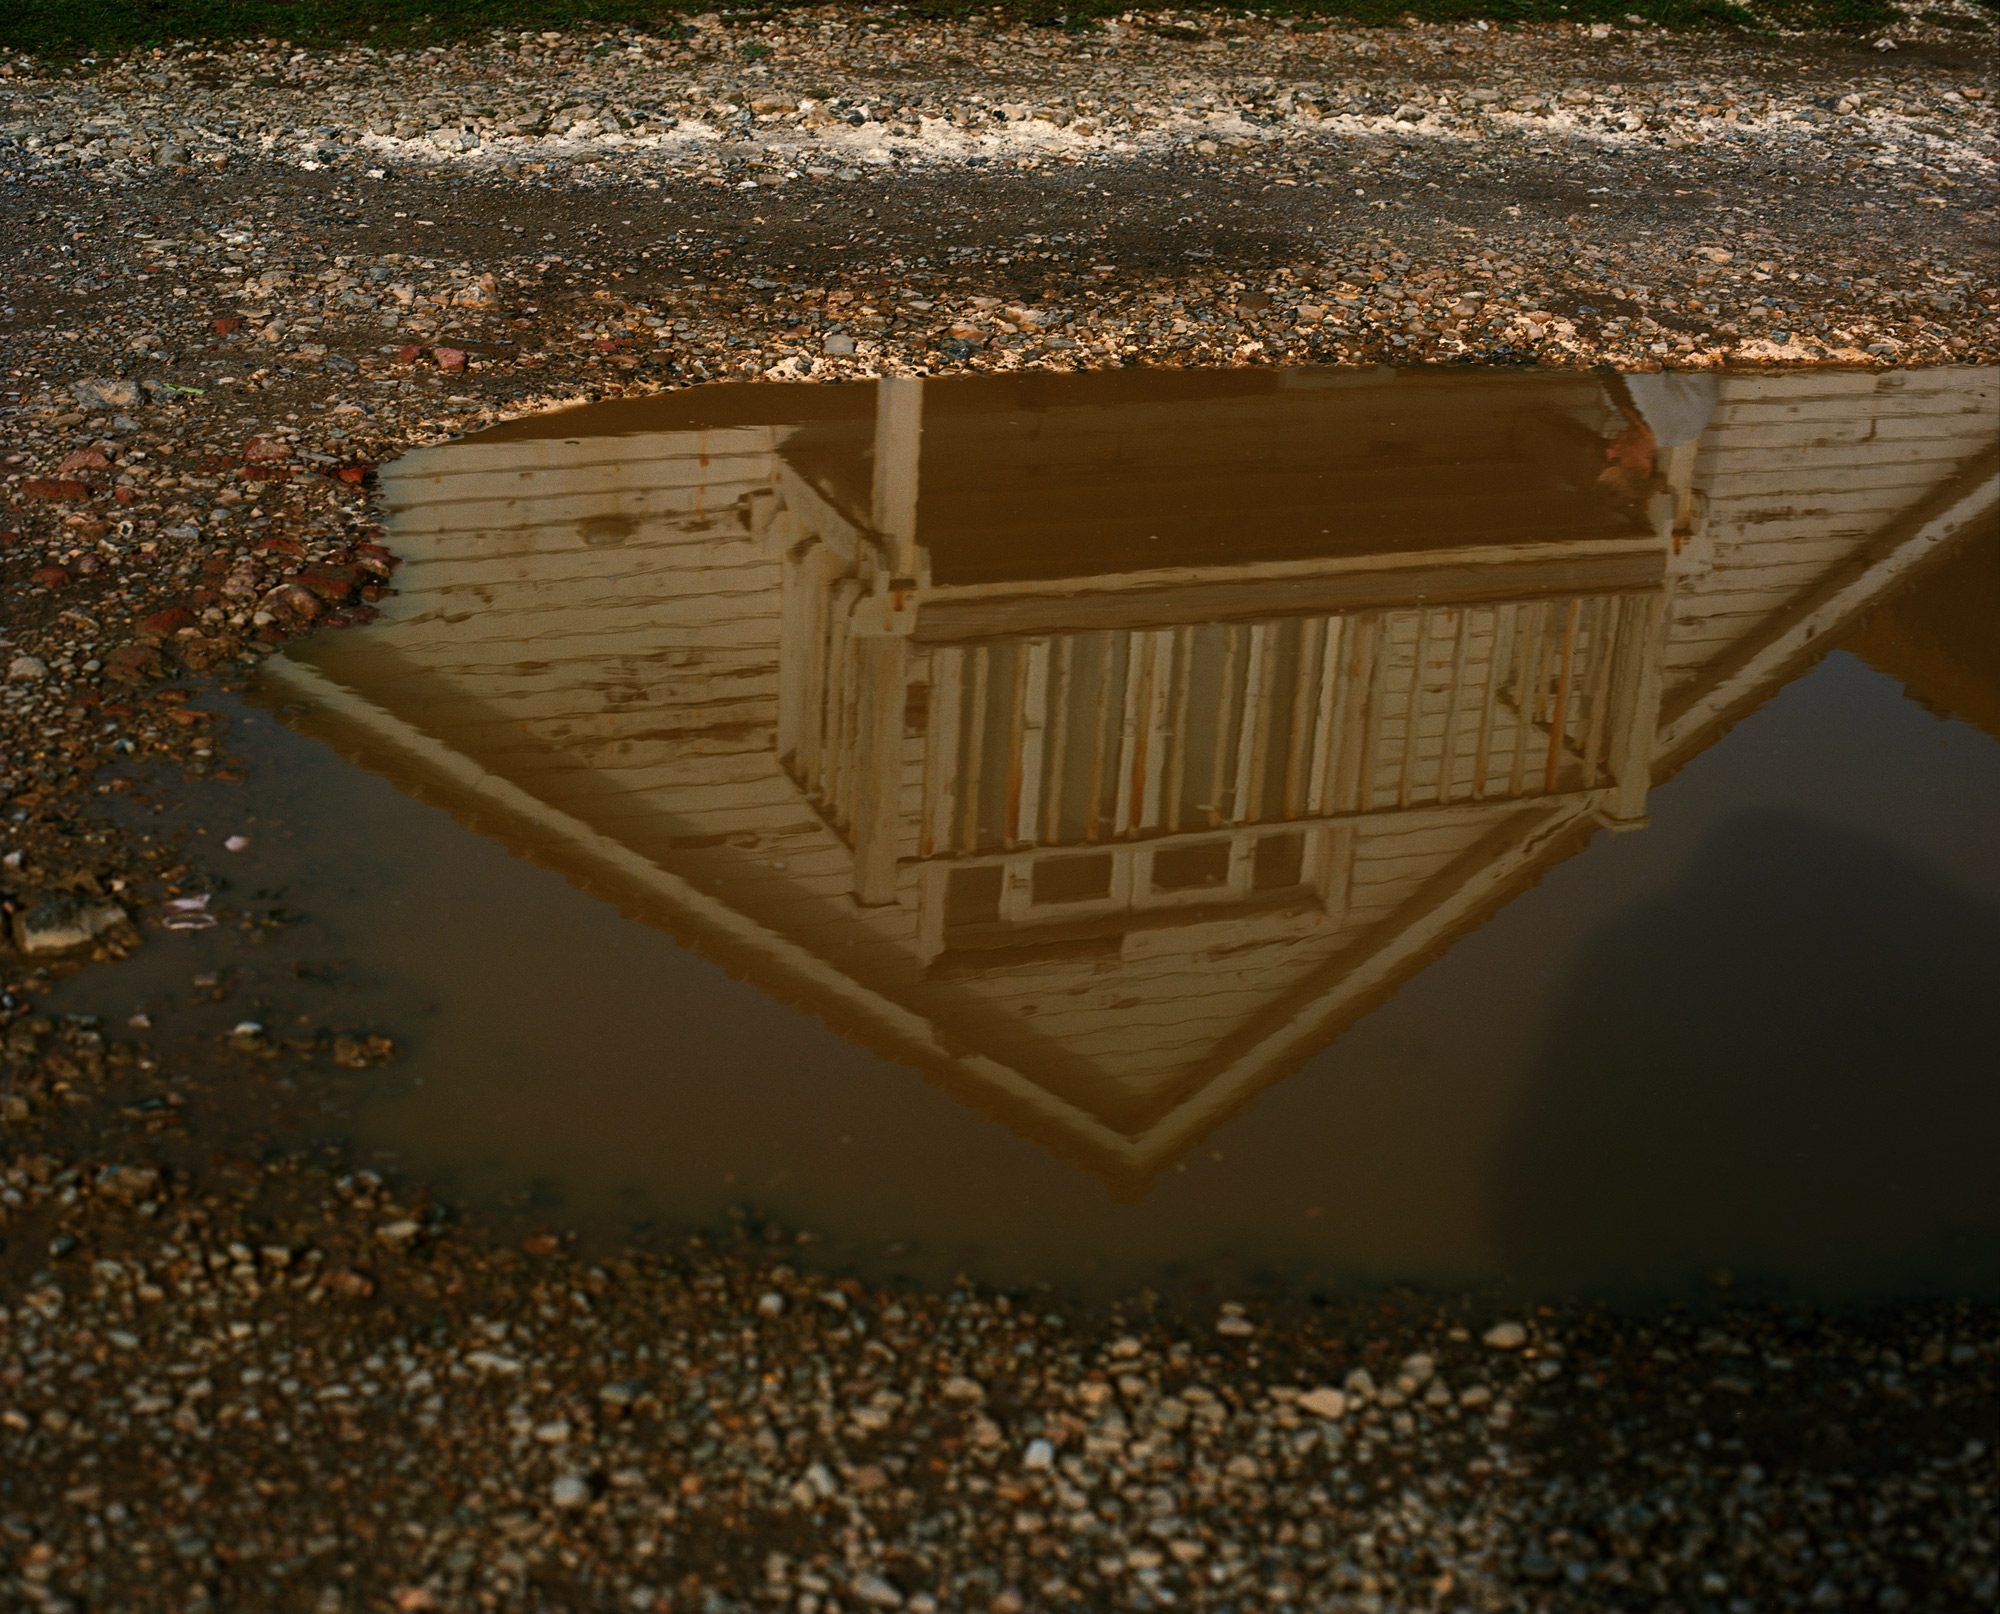 Reflections, Observations series, Photography By Ioannis Koussertari